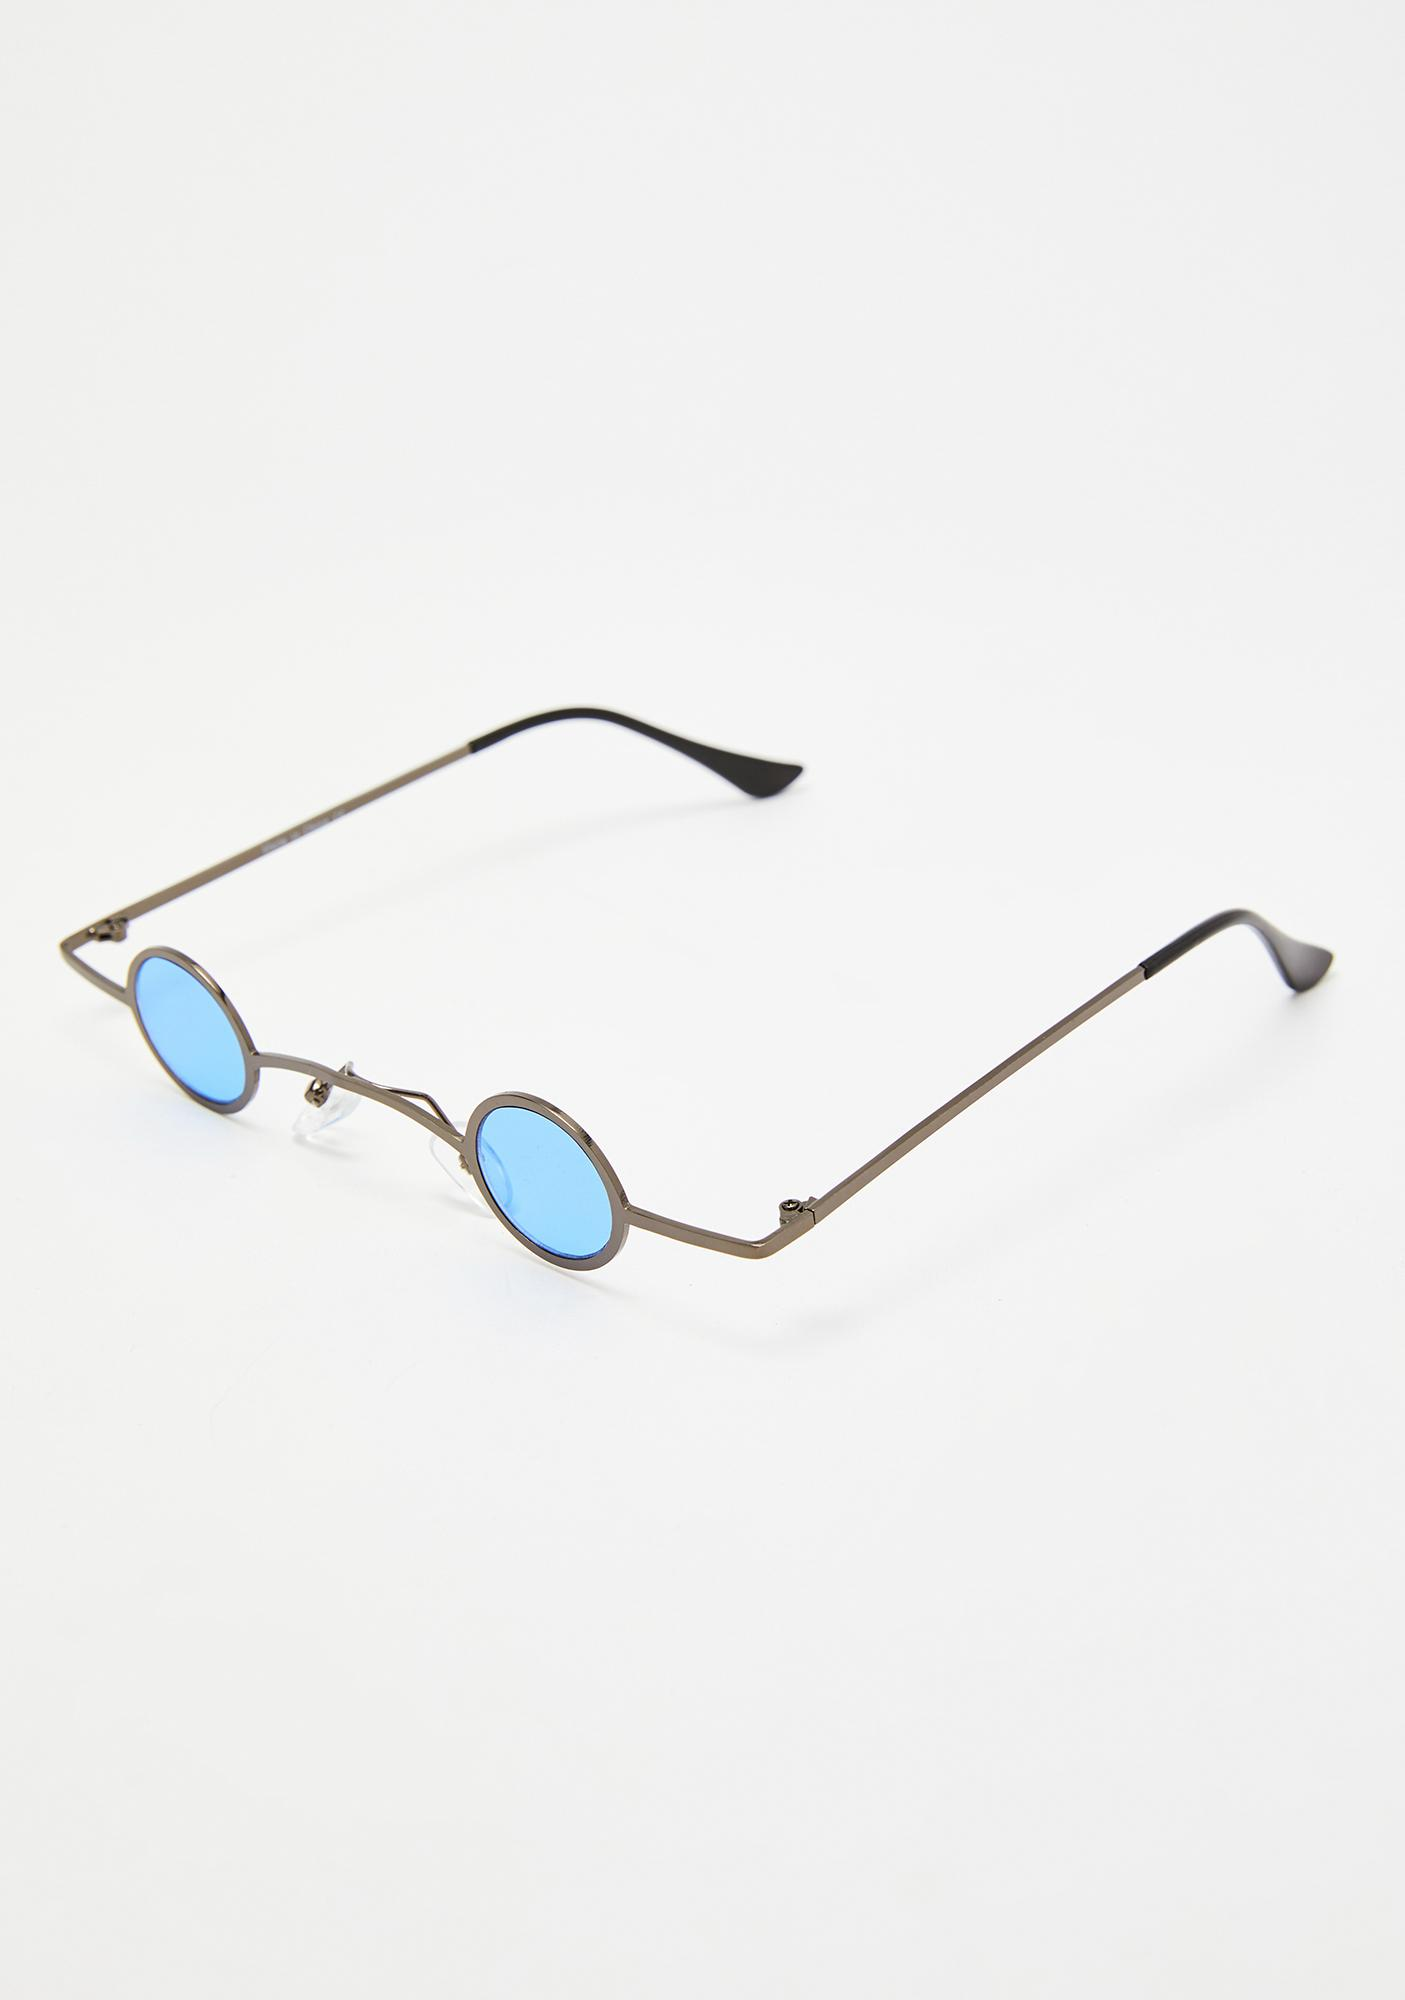 Replay Vintage Sunglasses Sharp Eye Mini Sunglasses